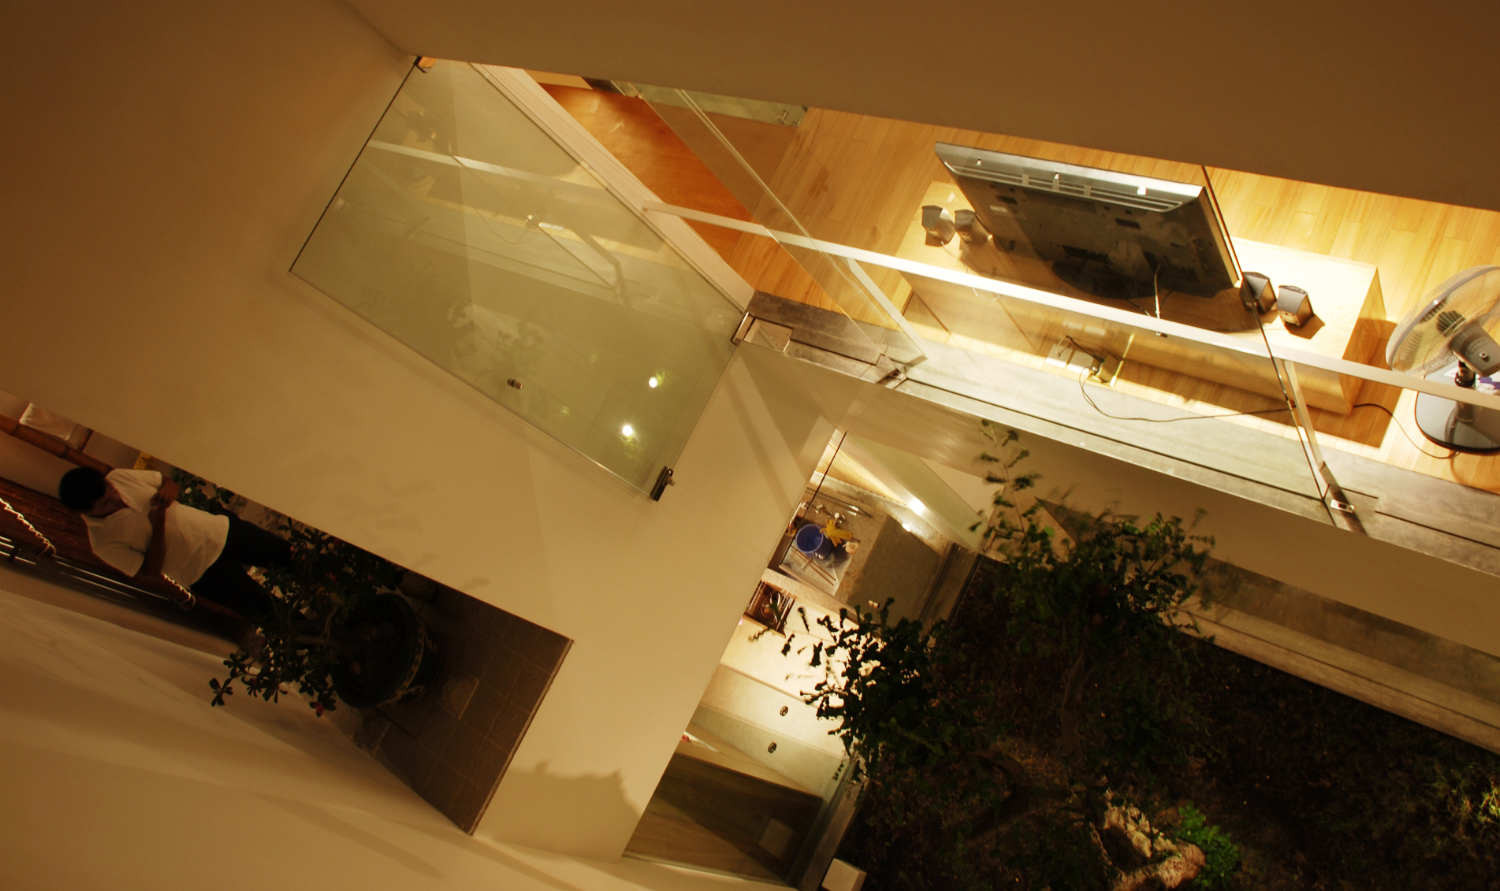 M11 House a21 studio Gallery of